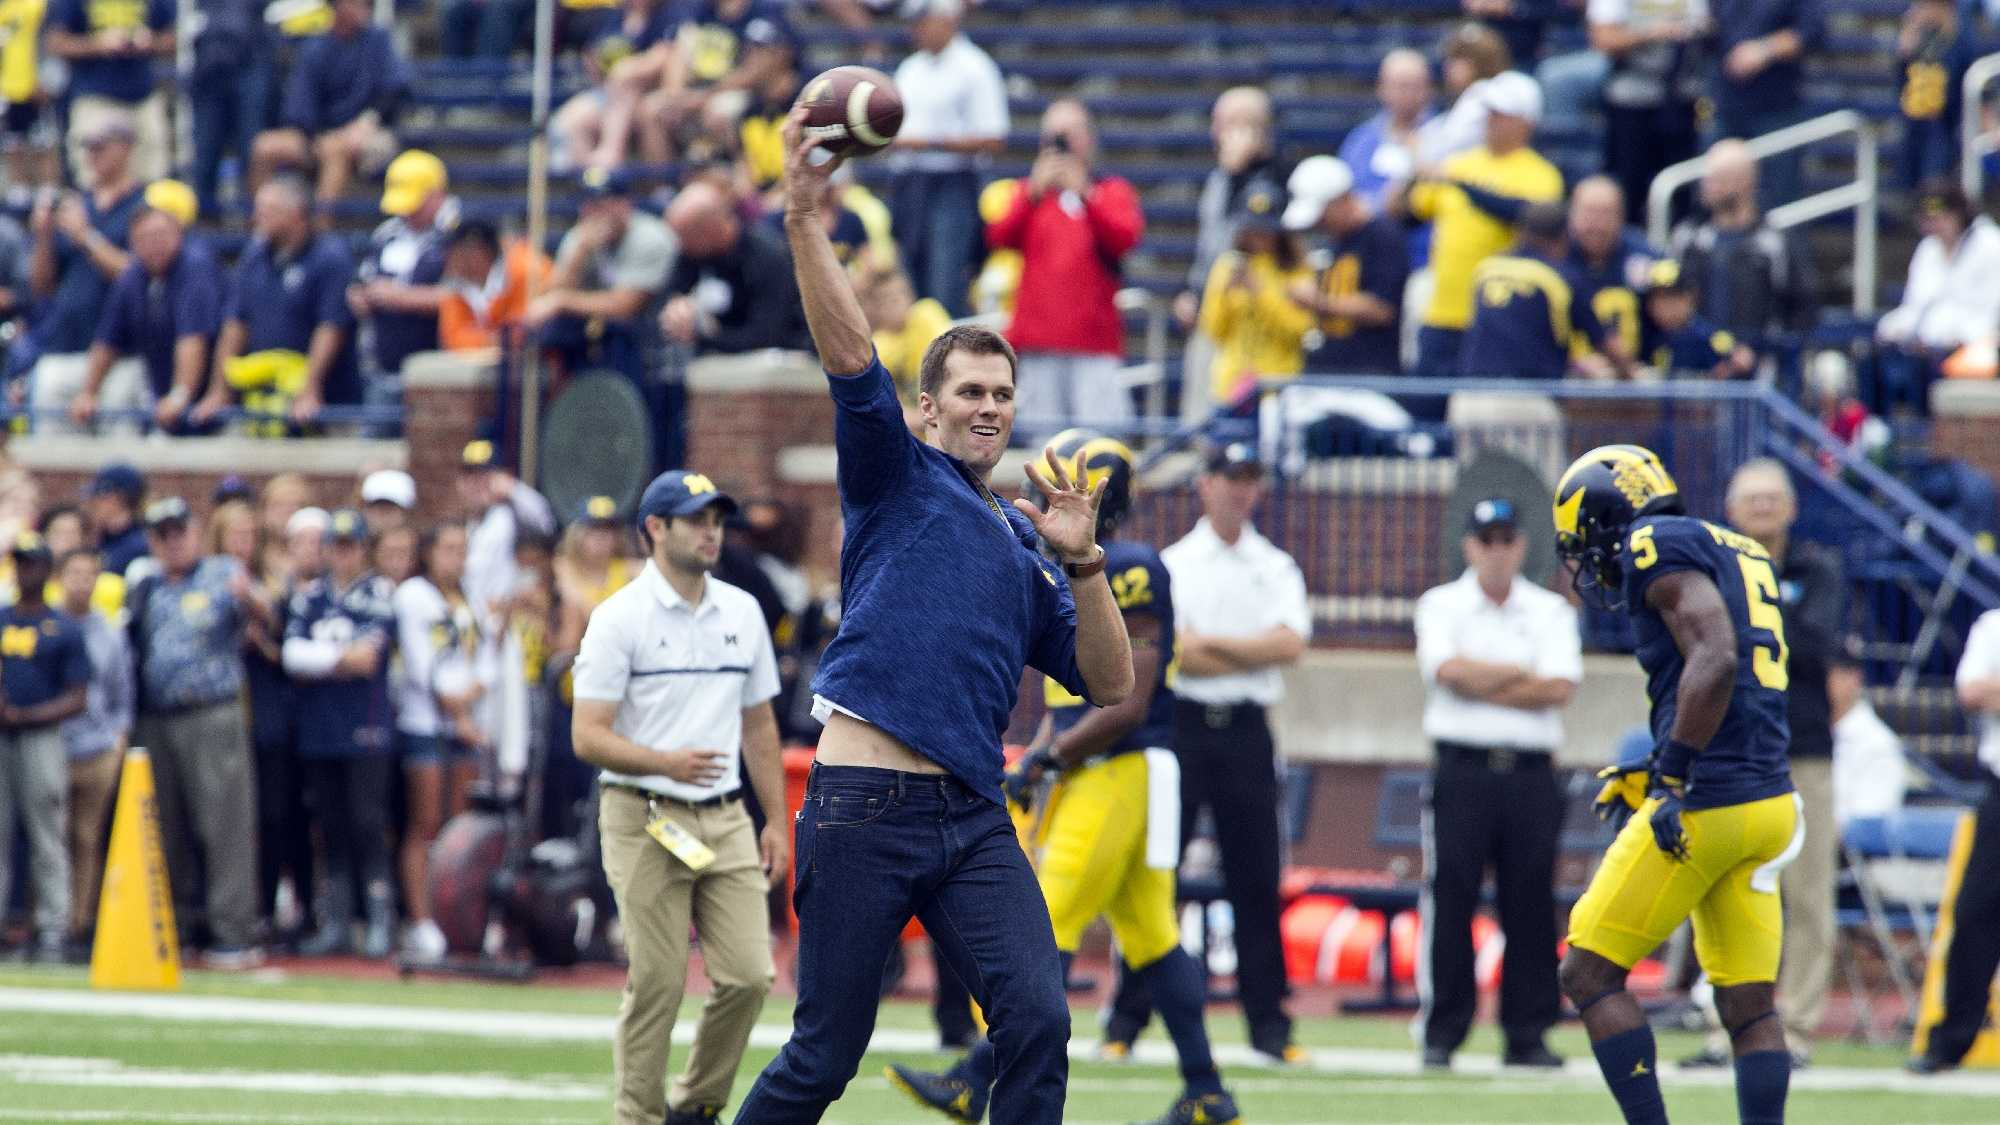 Former Michigan and currently suspended New England Patriots quarterback Tom Brady throws the football on the field before an NCAA college football game against Colorado at Michigan Stadium in Ann Arbor, Mich., Saturday, Sept. 17, 2016.